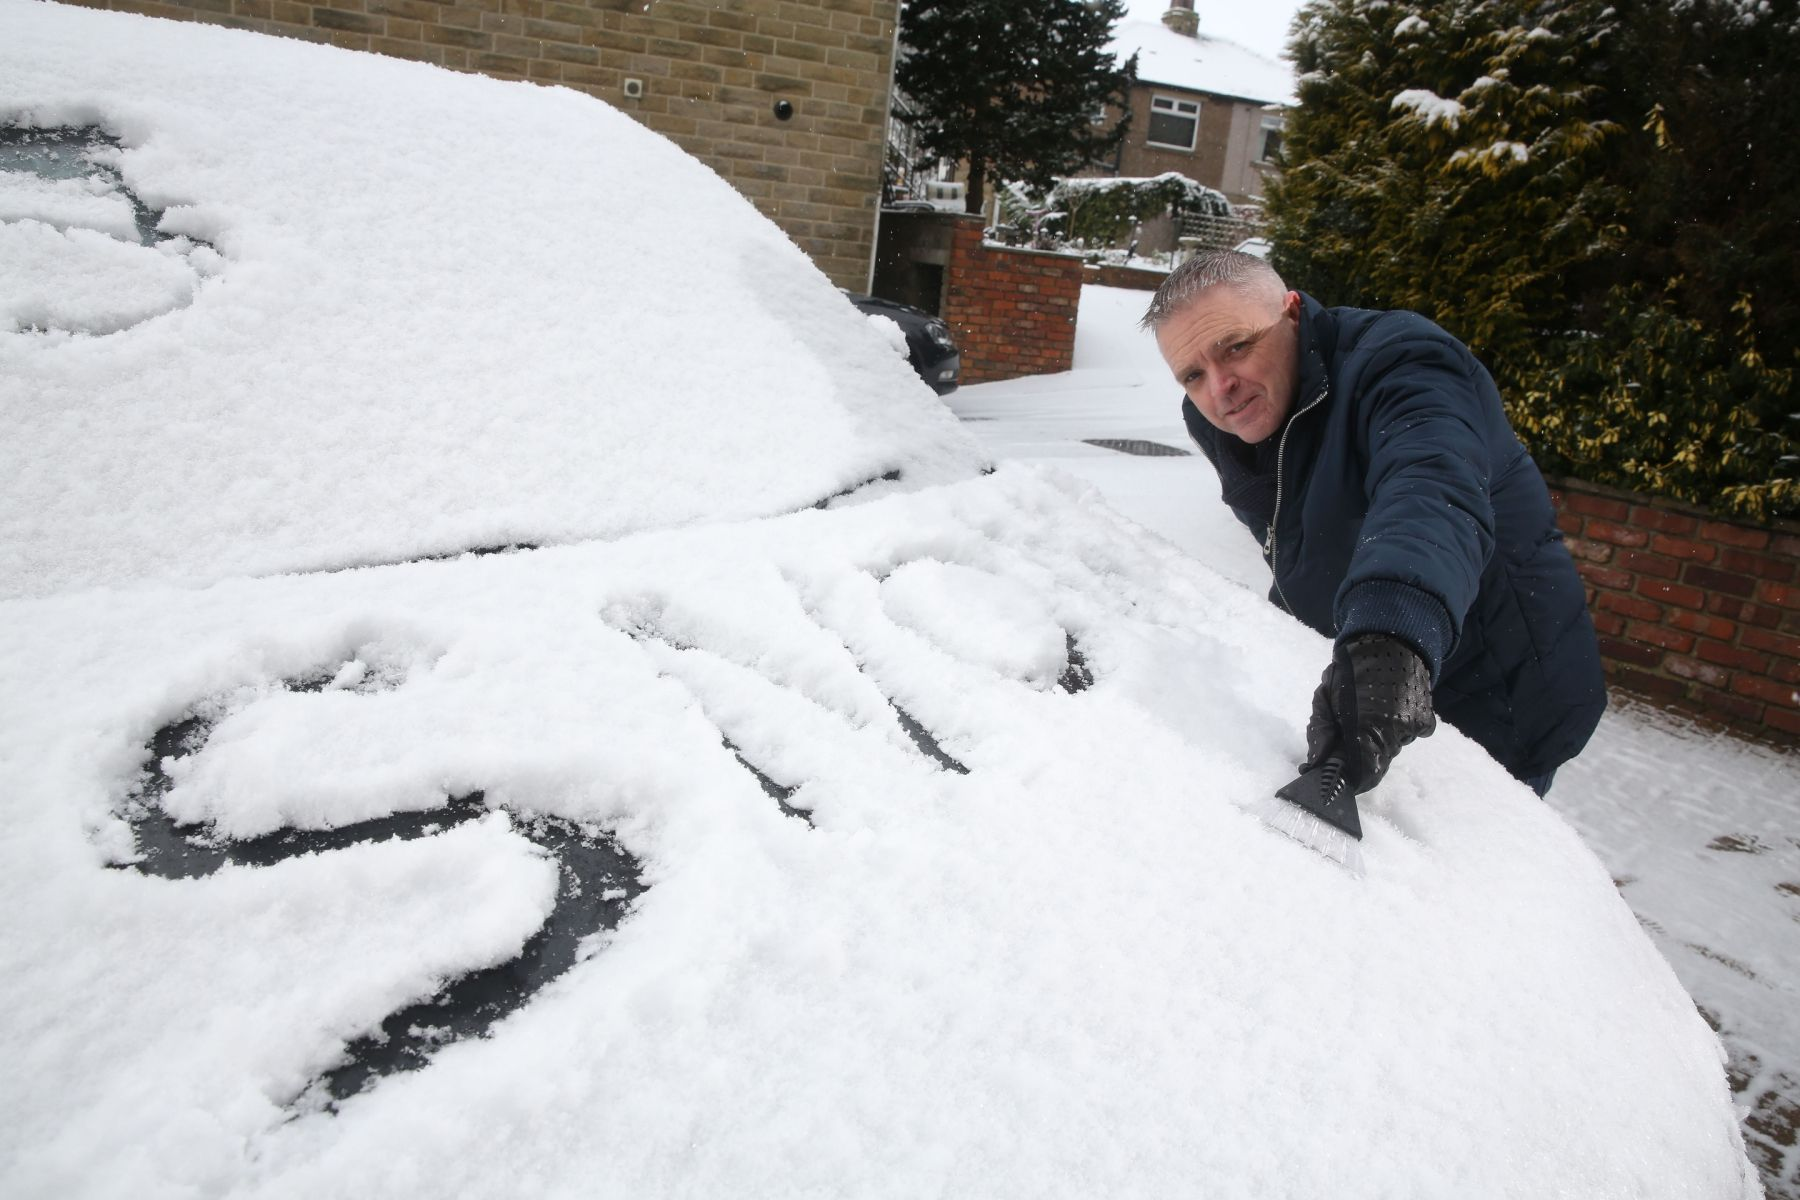 Snow expected today as yellow weather warning is issued for Newark